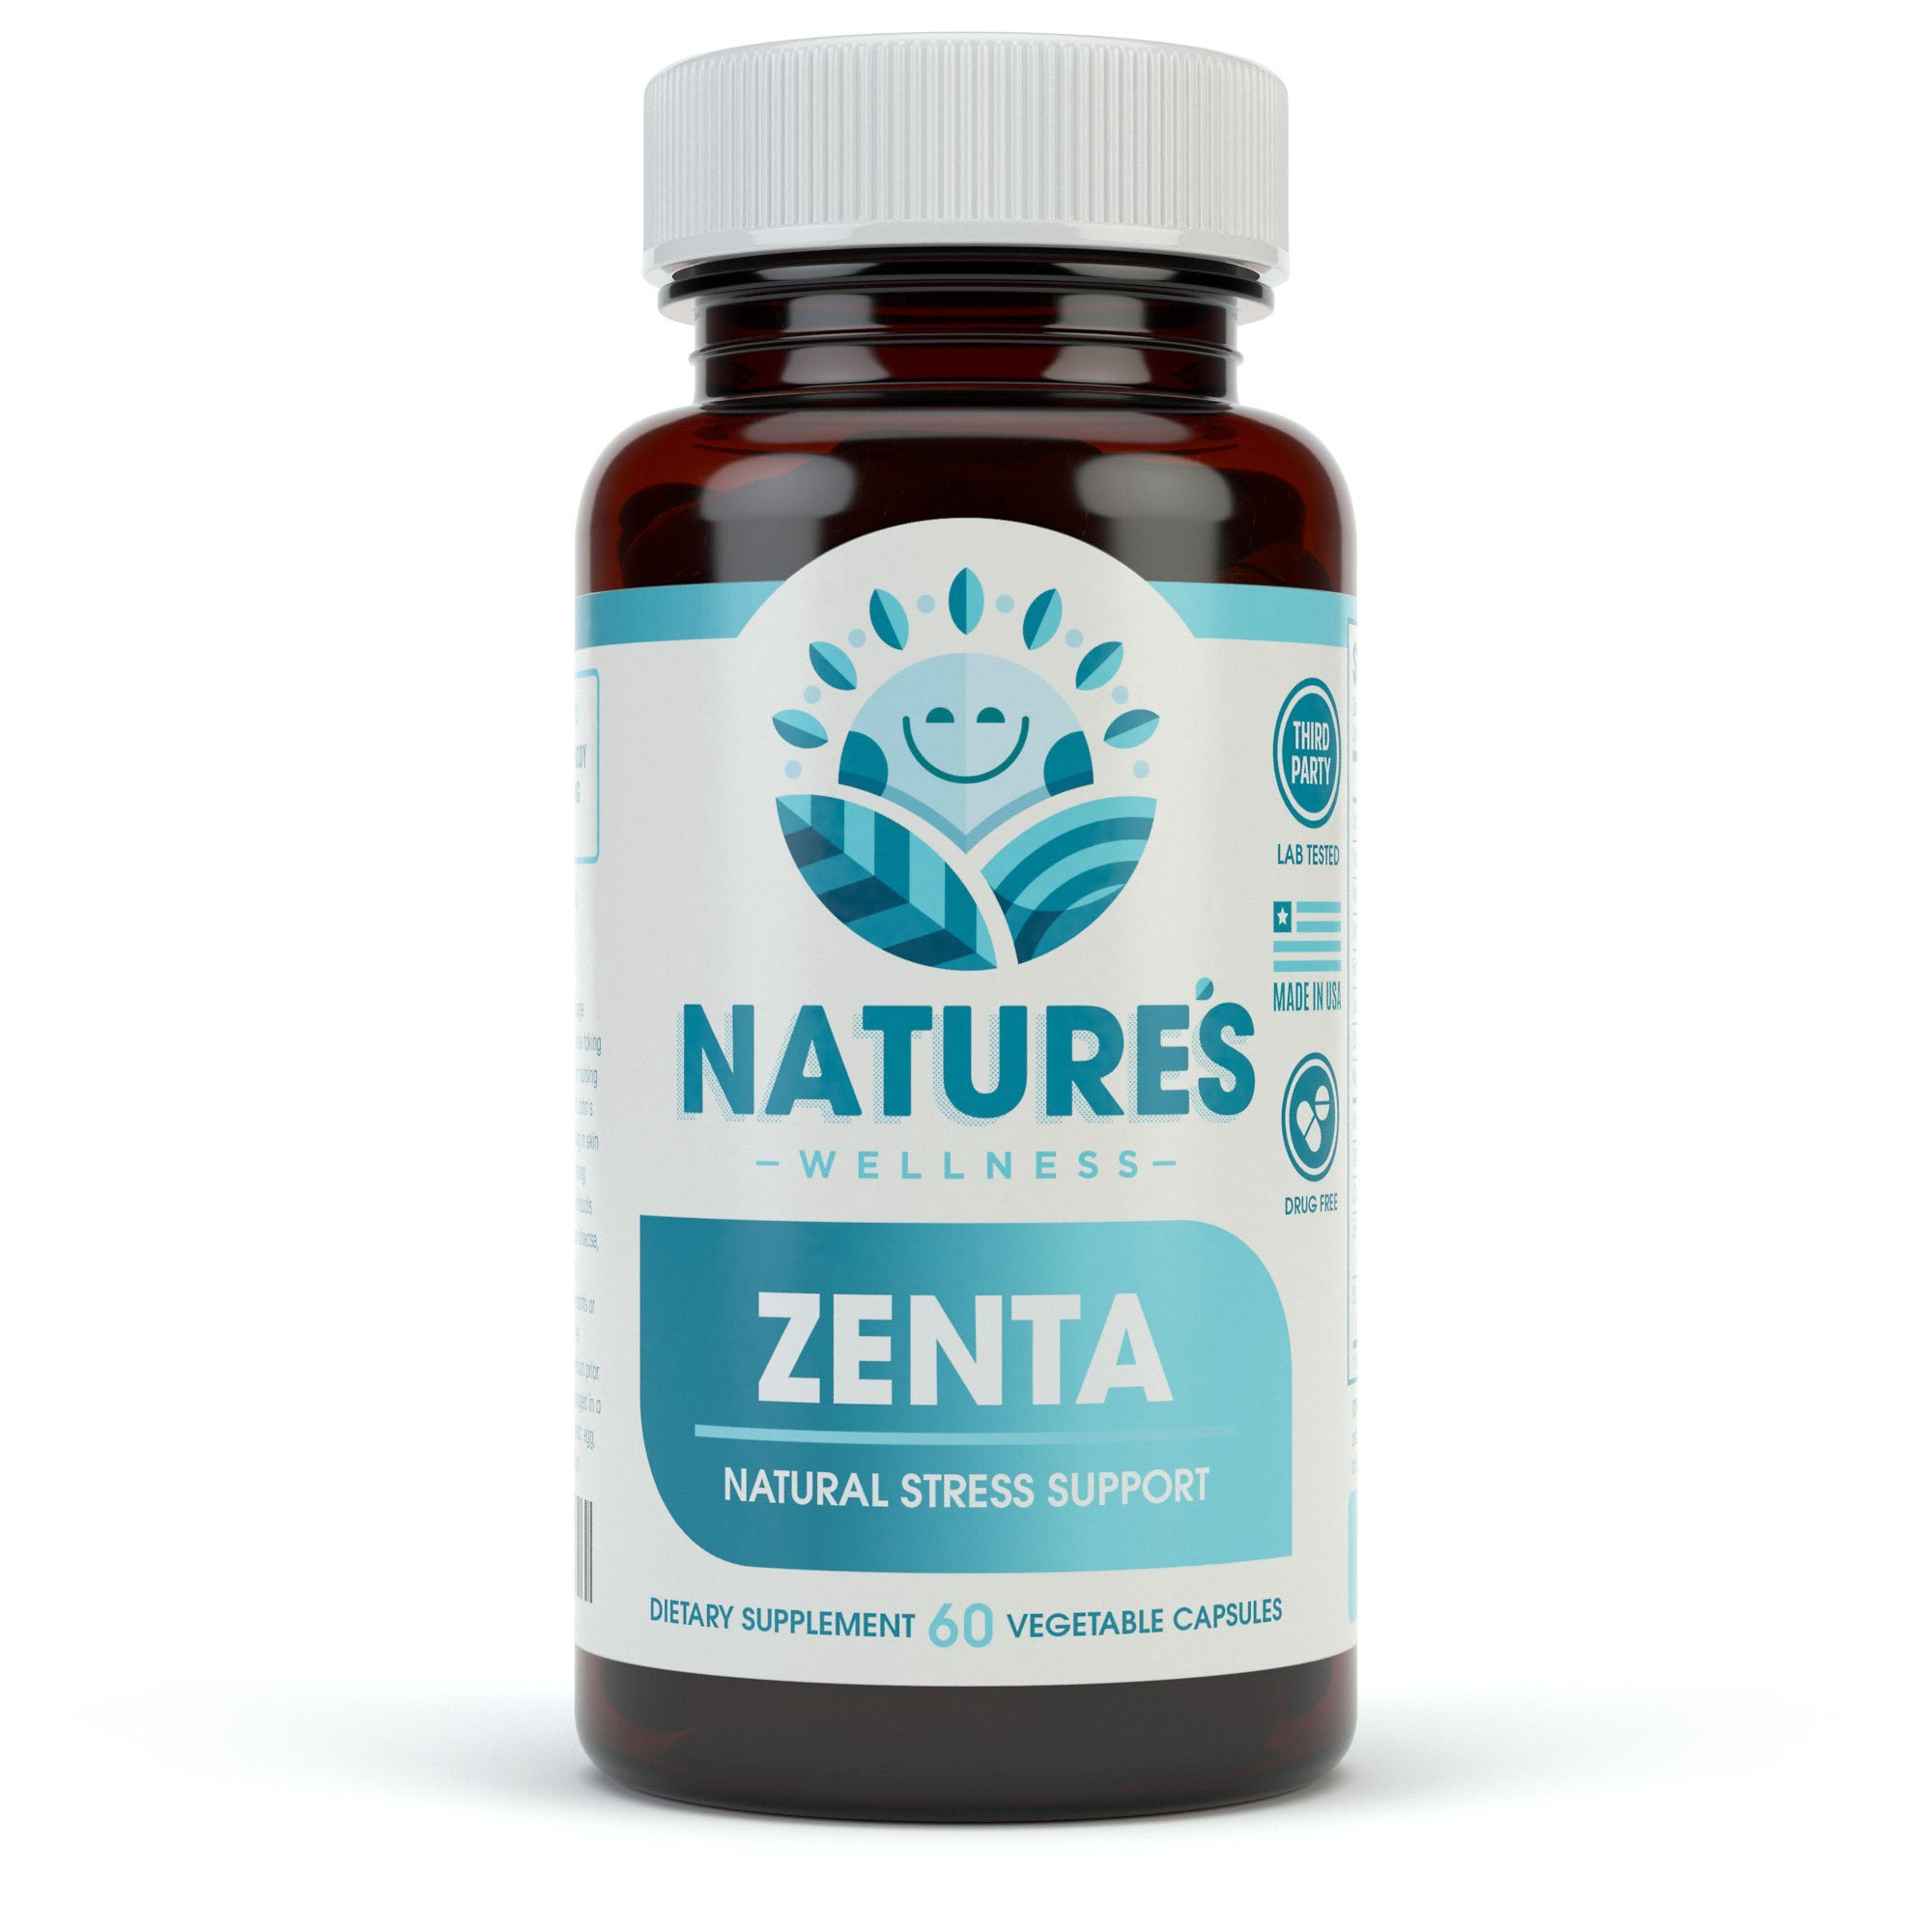 ZENTA - The Natural Anxiety Relief and Anti Stress Supplement to Help Calm Body and Mind   Positive Mood Enhancer - Increase Serotonin Levels with GAB, 5-HTP, Ashwagandha, Chamomile, DMAE   60 ct